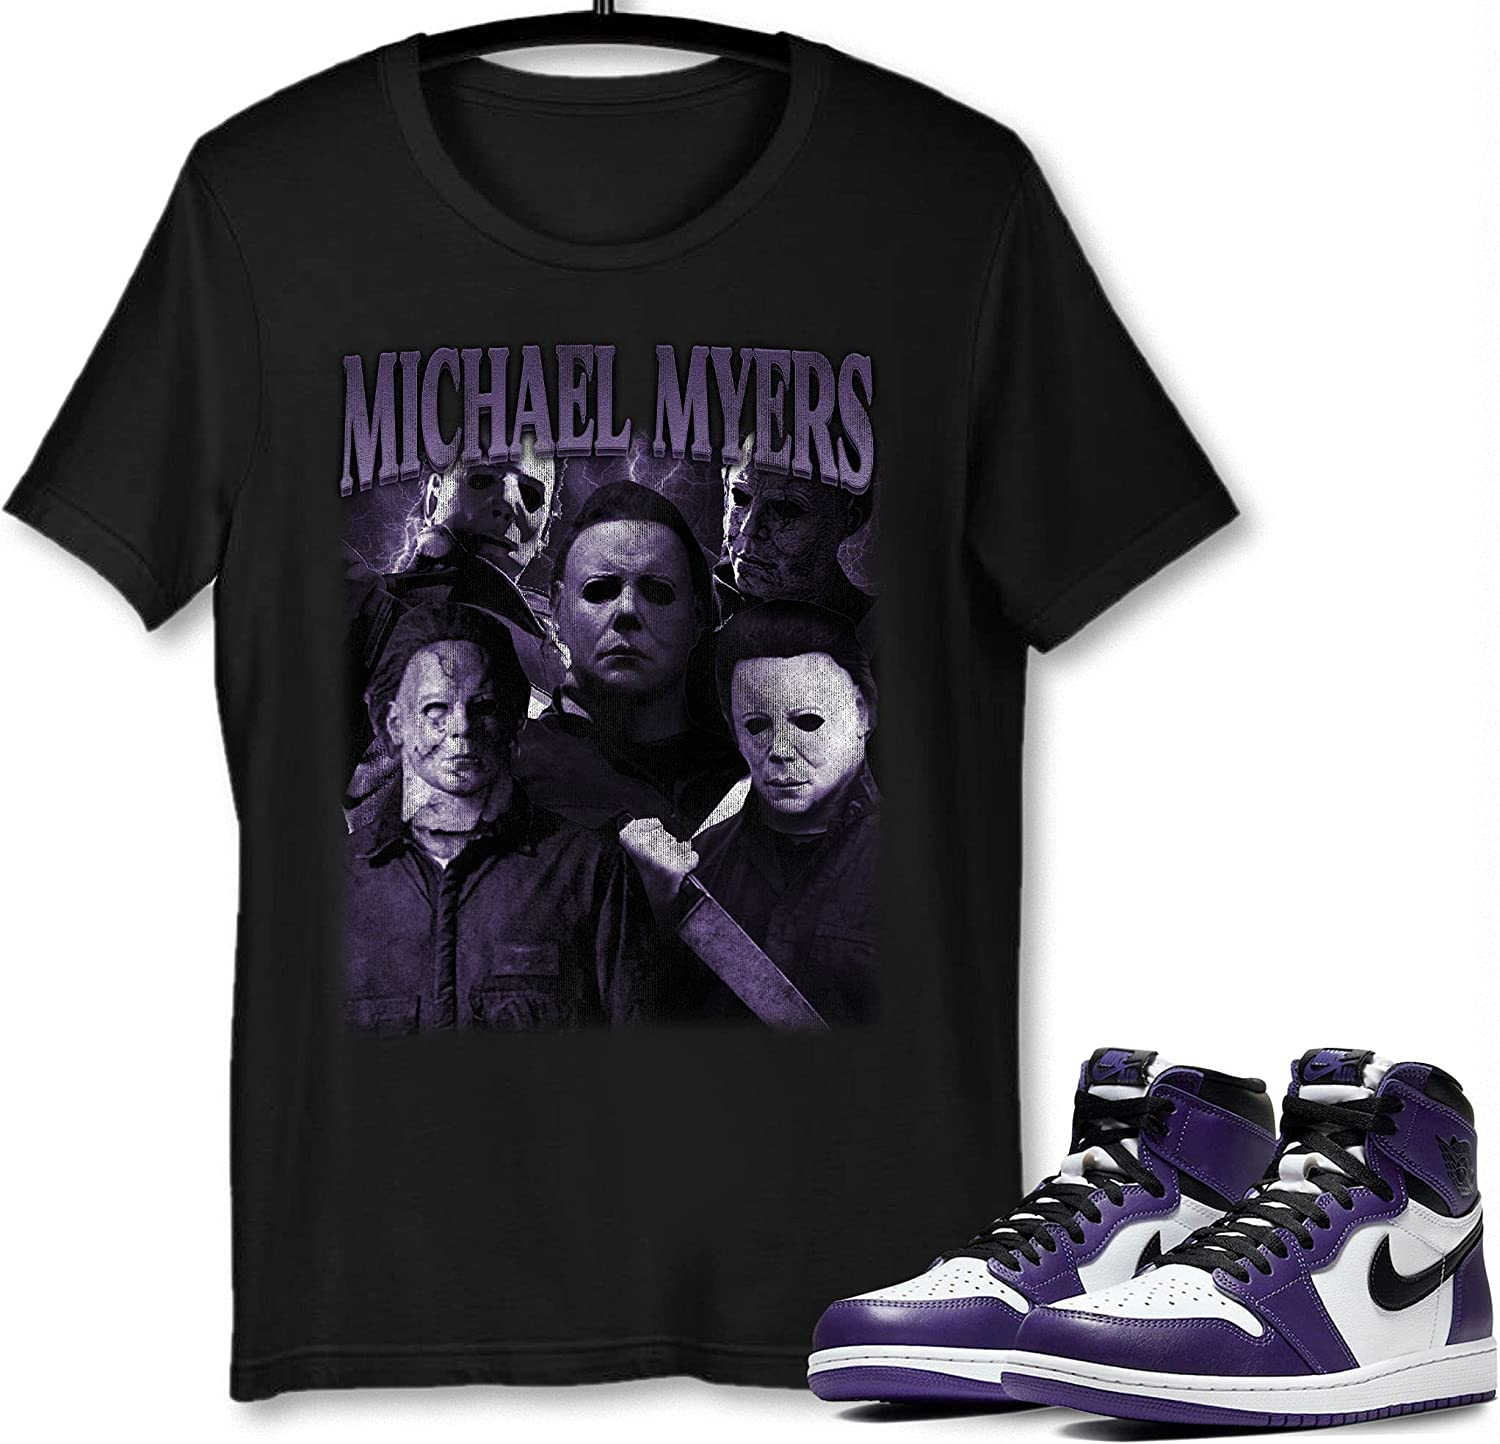 Popular popular Inventory cleanup selling sale #Michael #Myer T-Shirt to Match Jordan 1 Purple Court Sneaker Sn